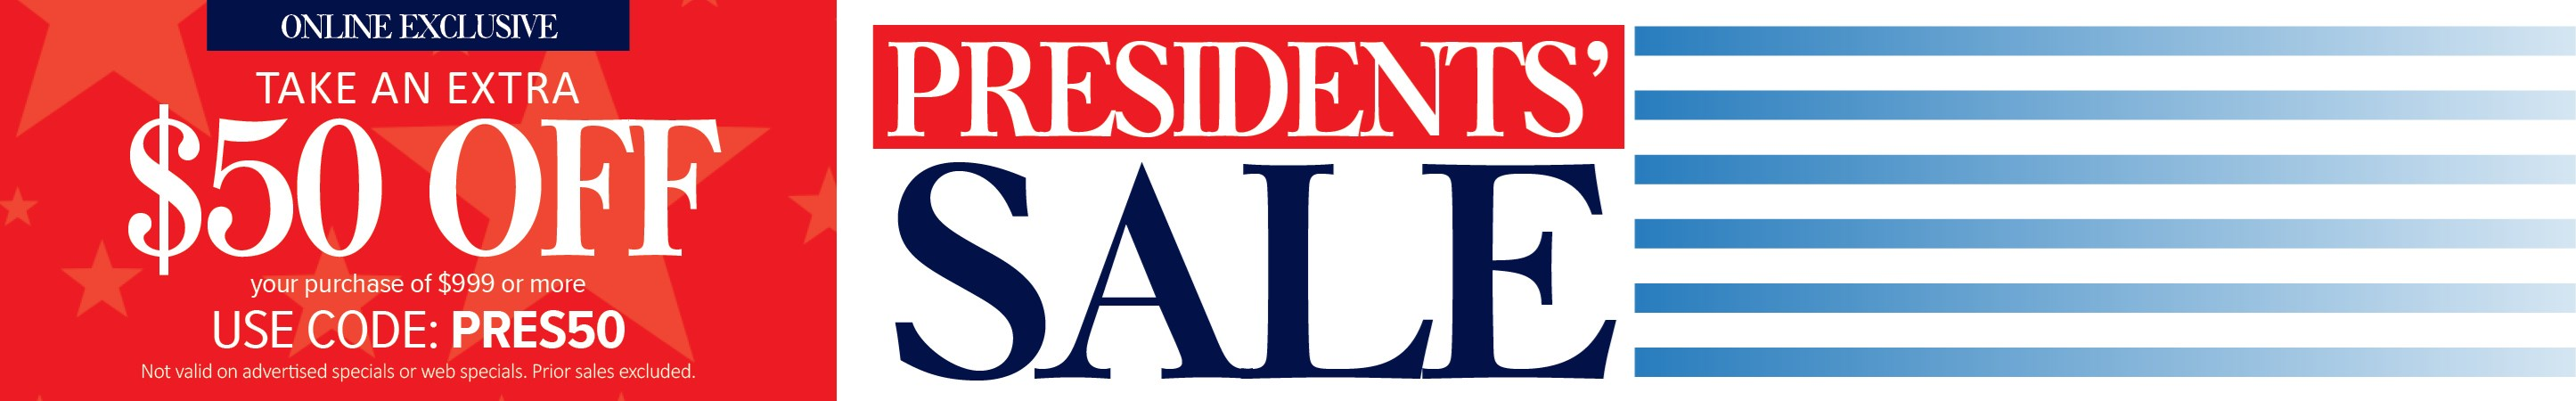 Presidents' Sale